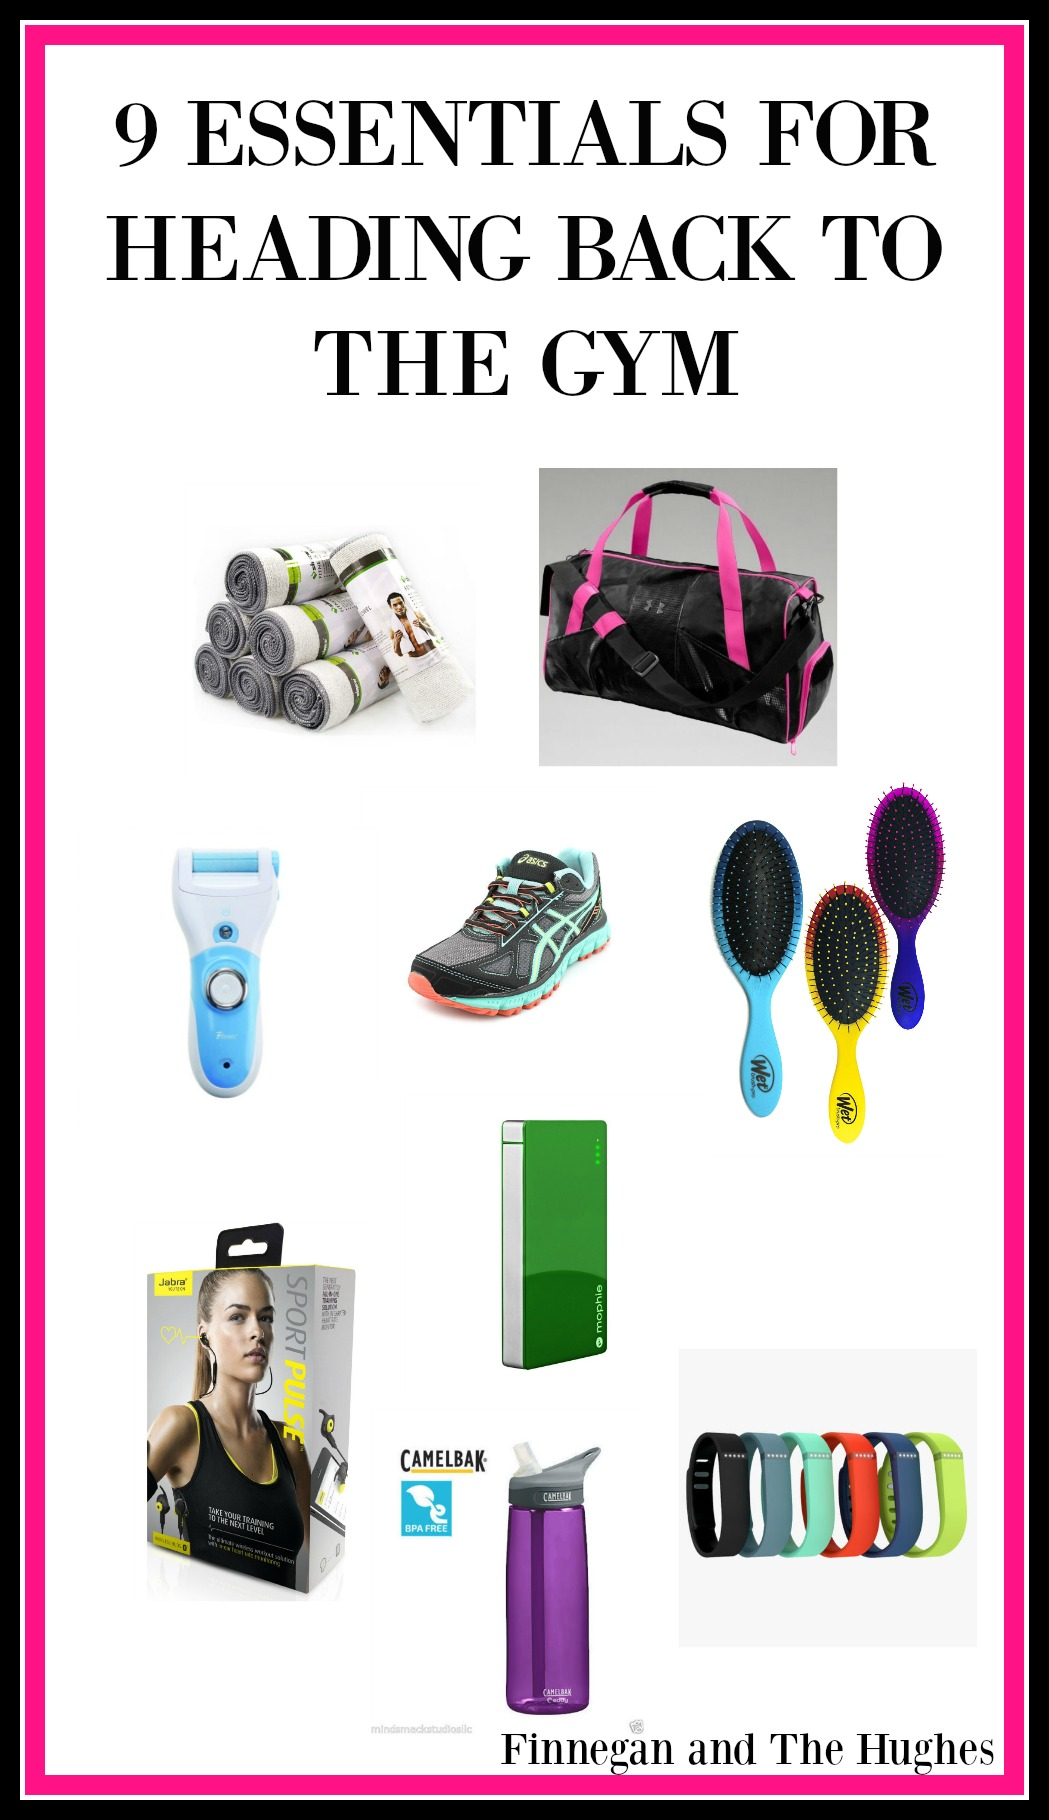 9 Essentials for Heading Back to The Gym 1